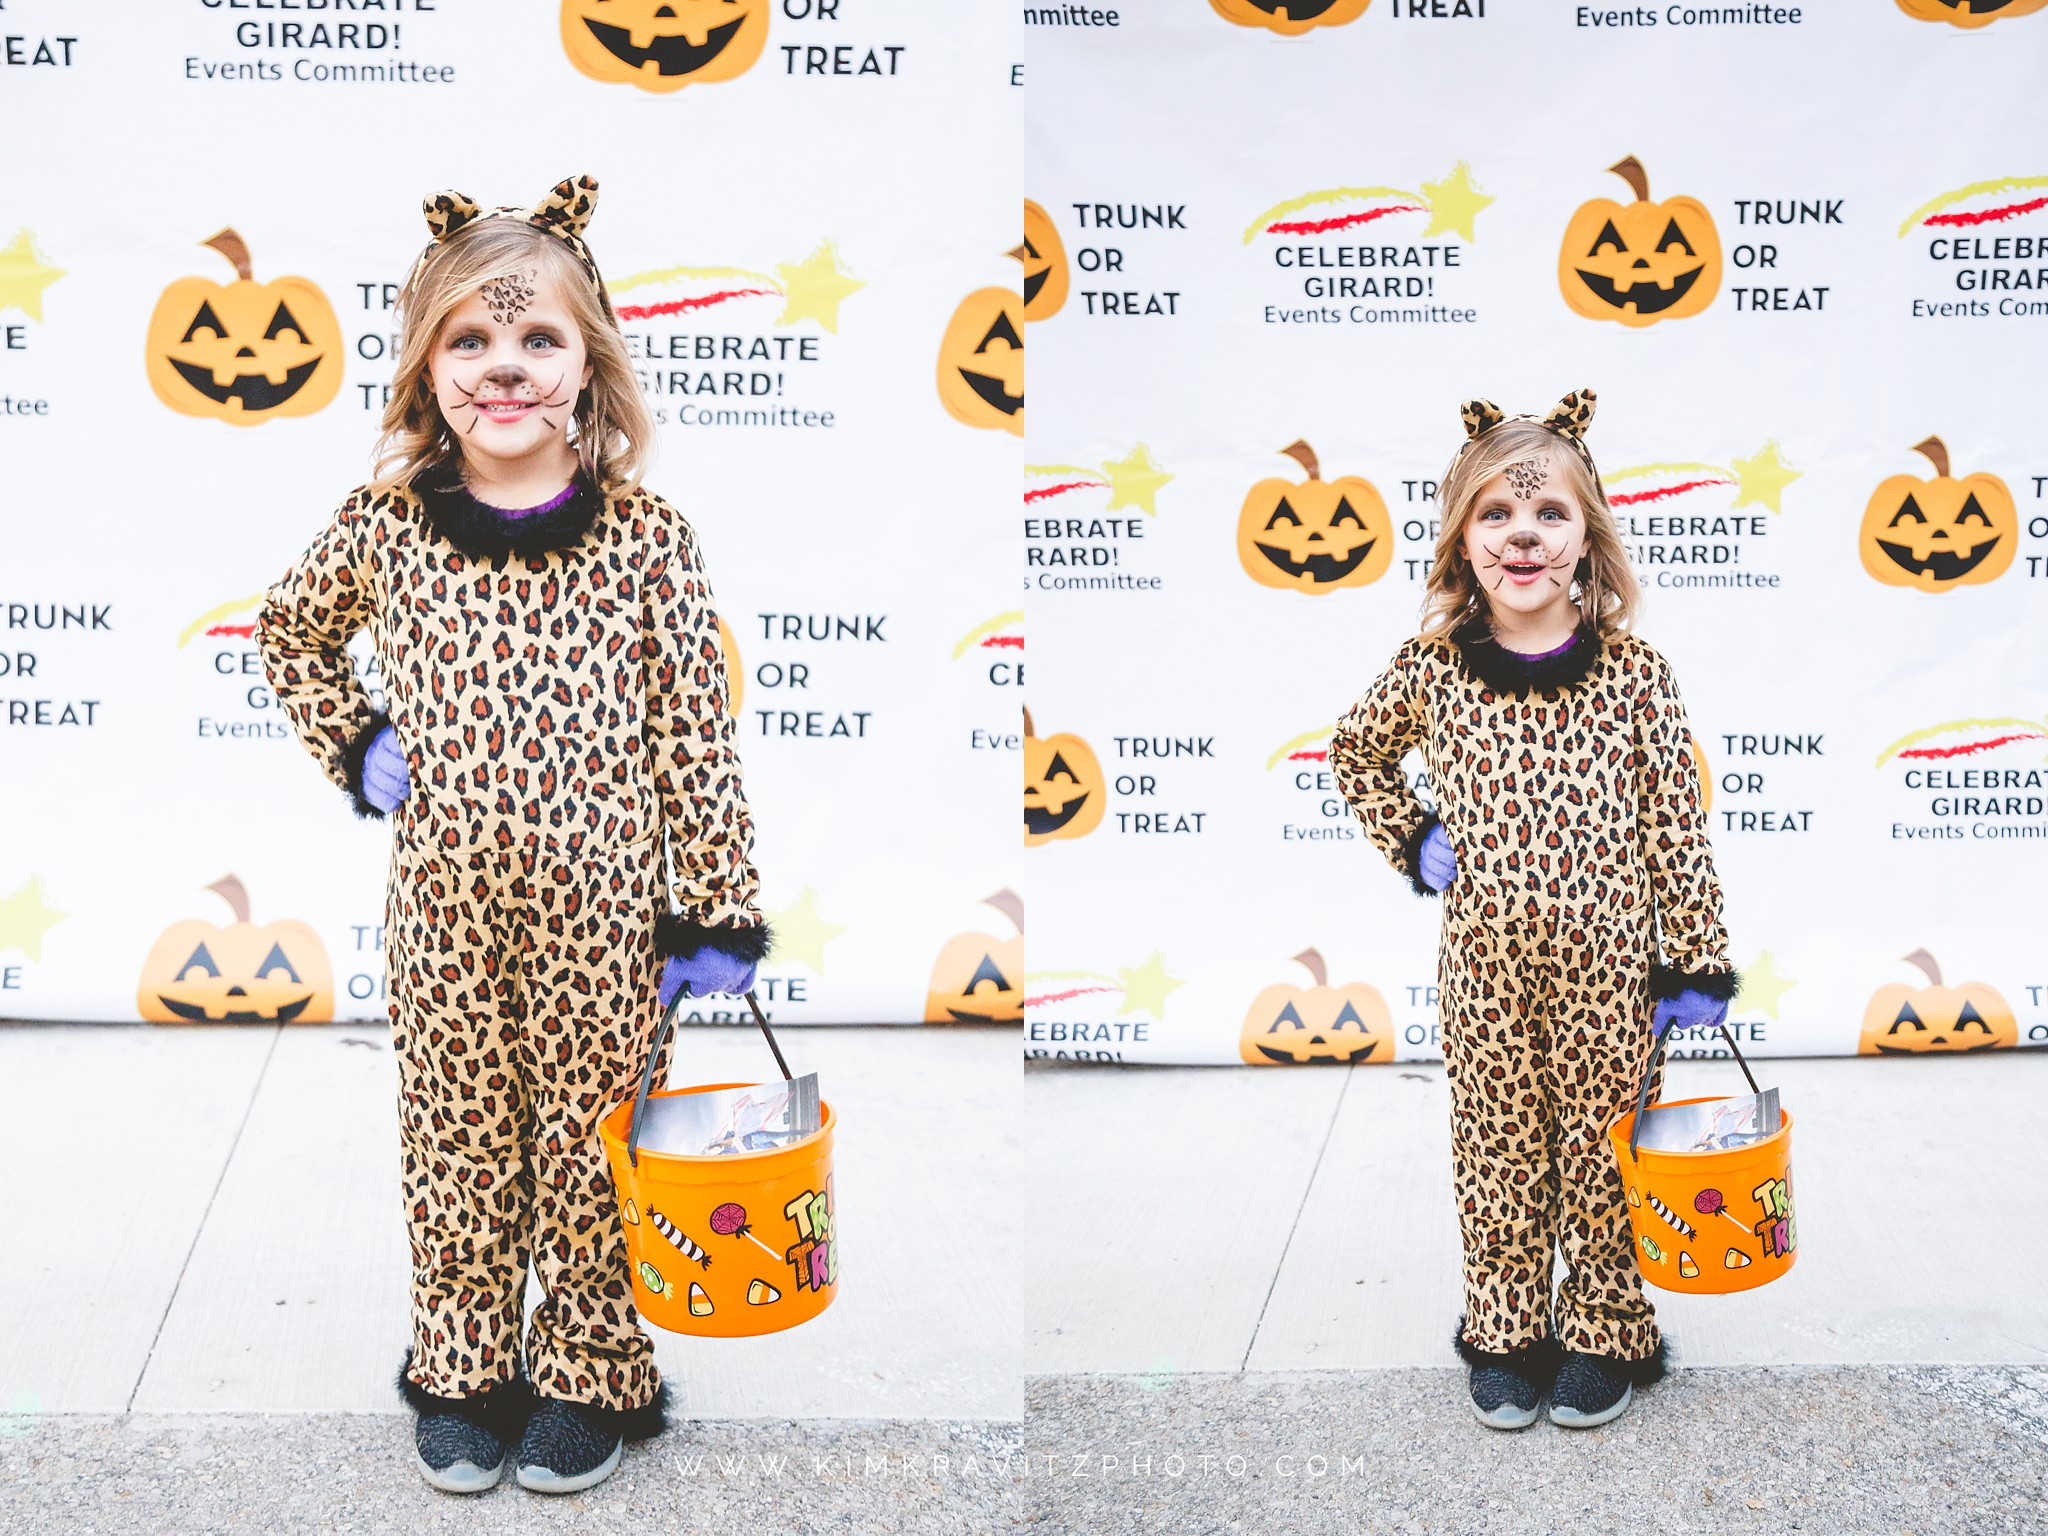 Celebrate Girard Halloween Step and Repeat Kim Kravitz